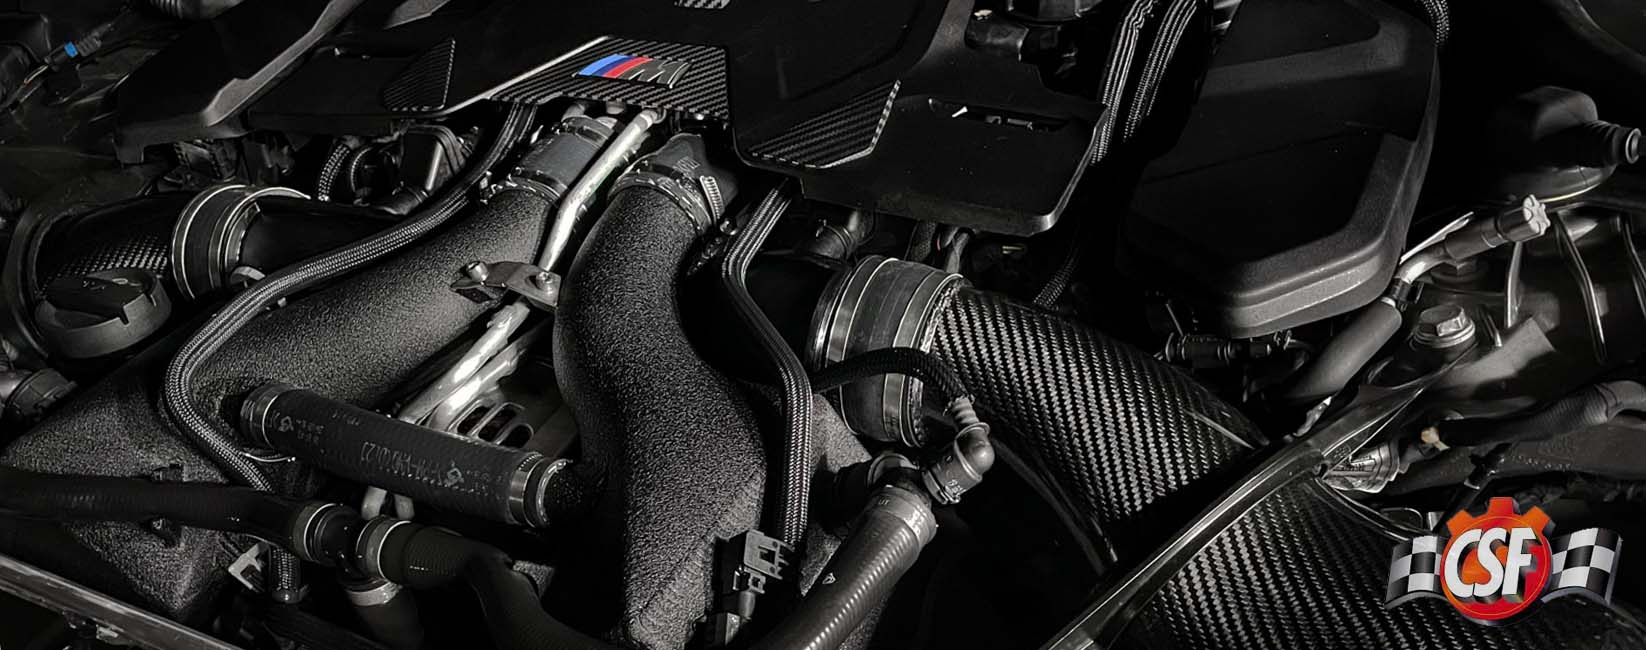 CSF Blog - BMW - BMW F90 M5 and F92 M8 Charge Coolers